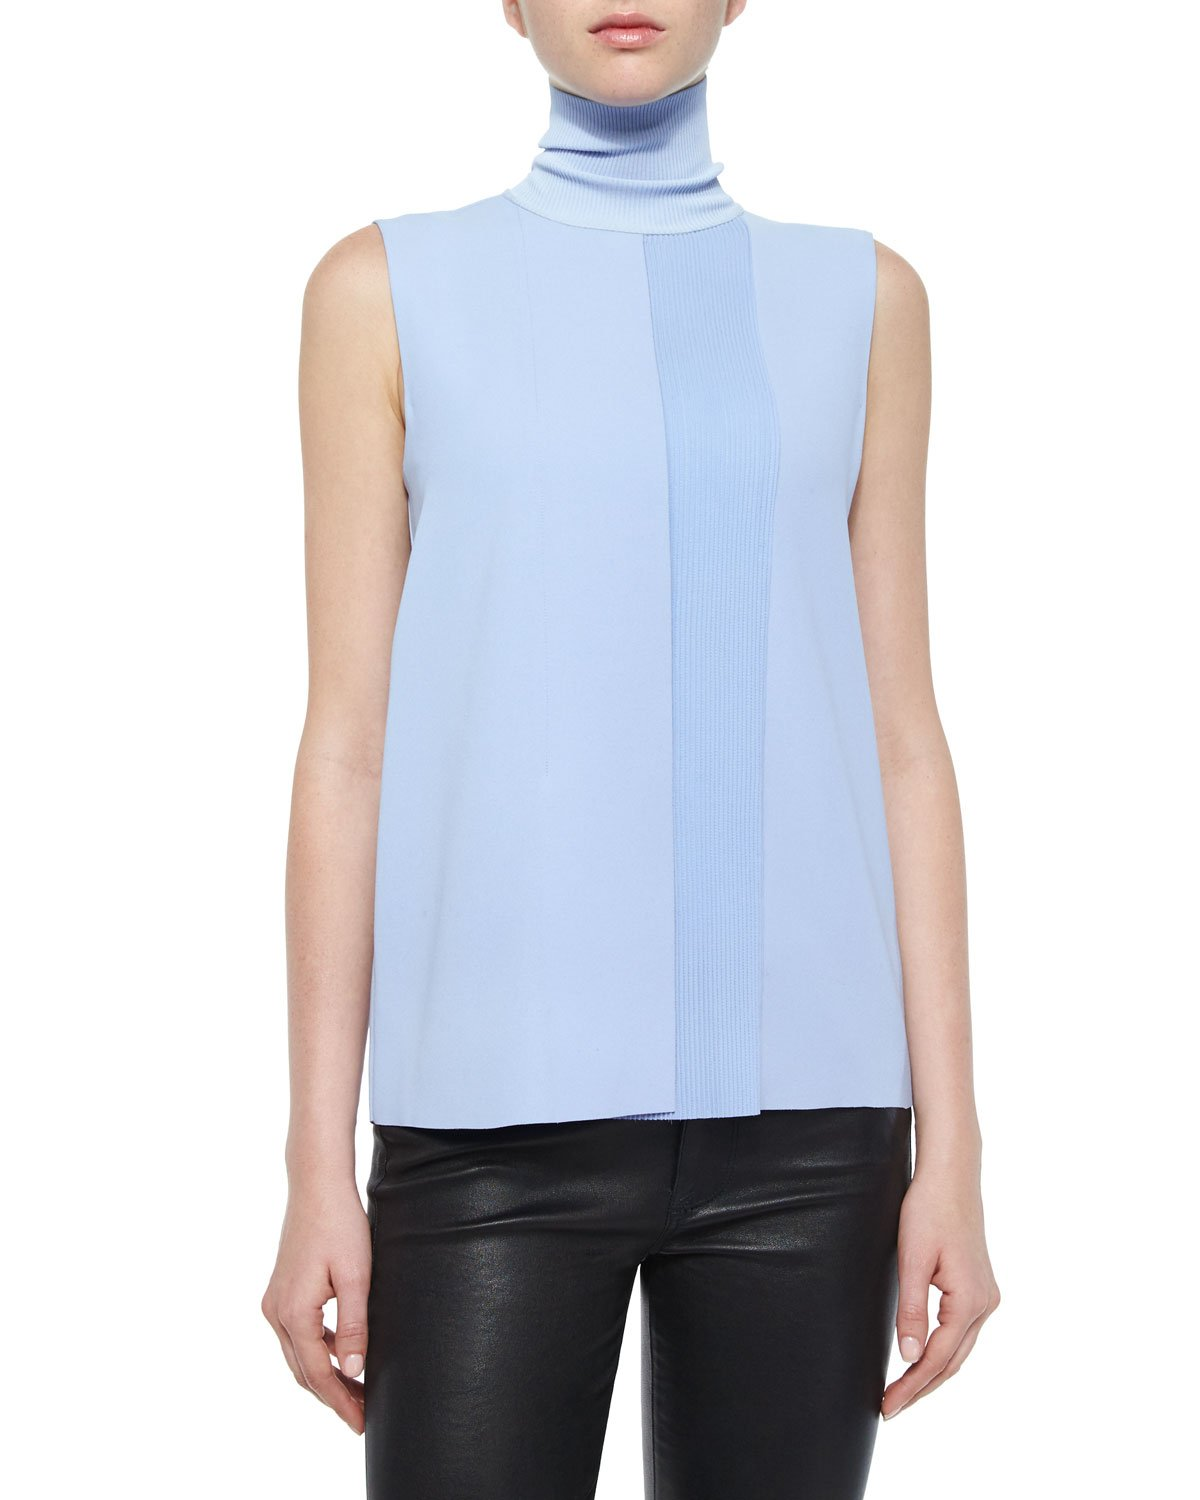 Similarly, a cropped sleeveless turtleneck can be distinctly casual when made from cotton and paired with jeans or shorts, but be decidedly upscale and edgy when incorporated into a more tailored, structured look with higher-end fabrics, like silk or cashmere.